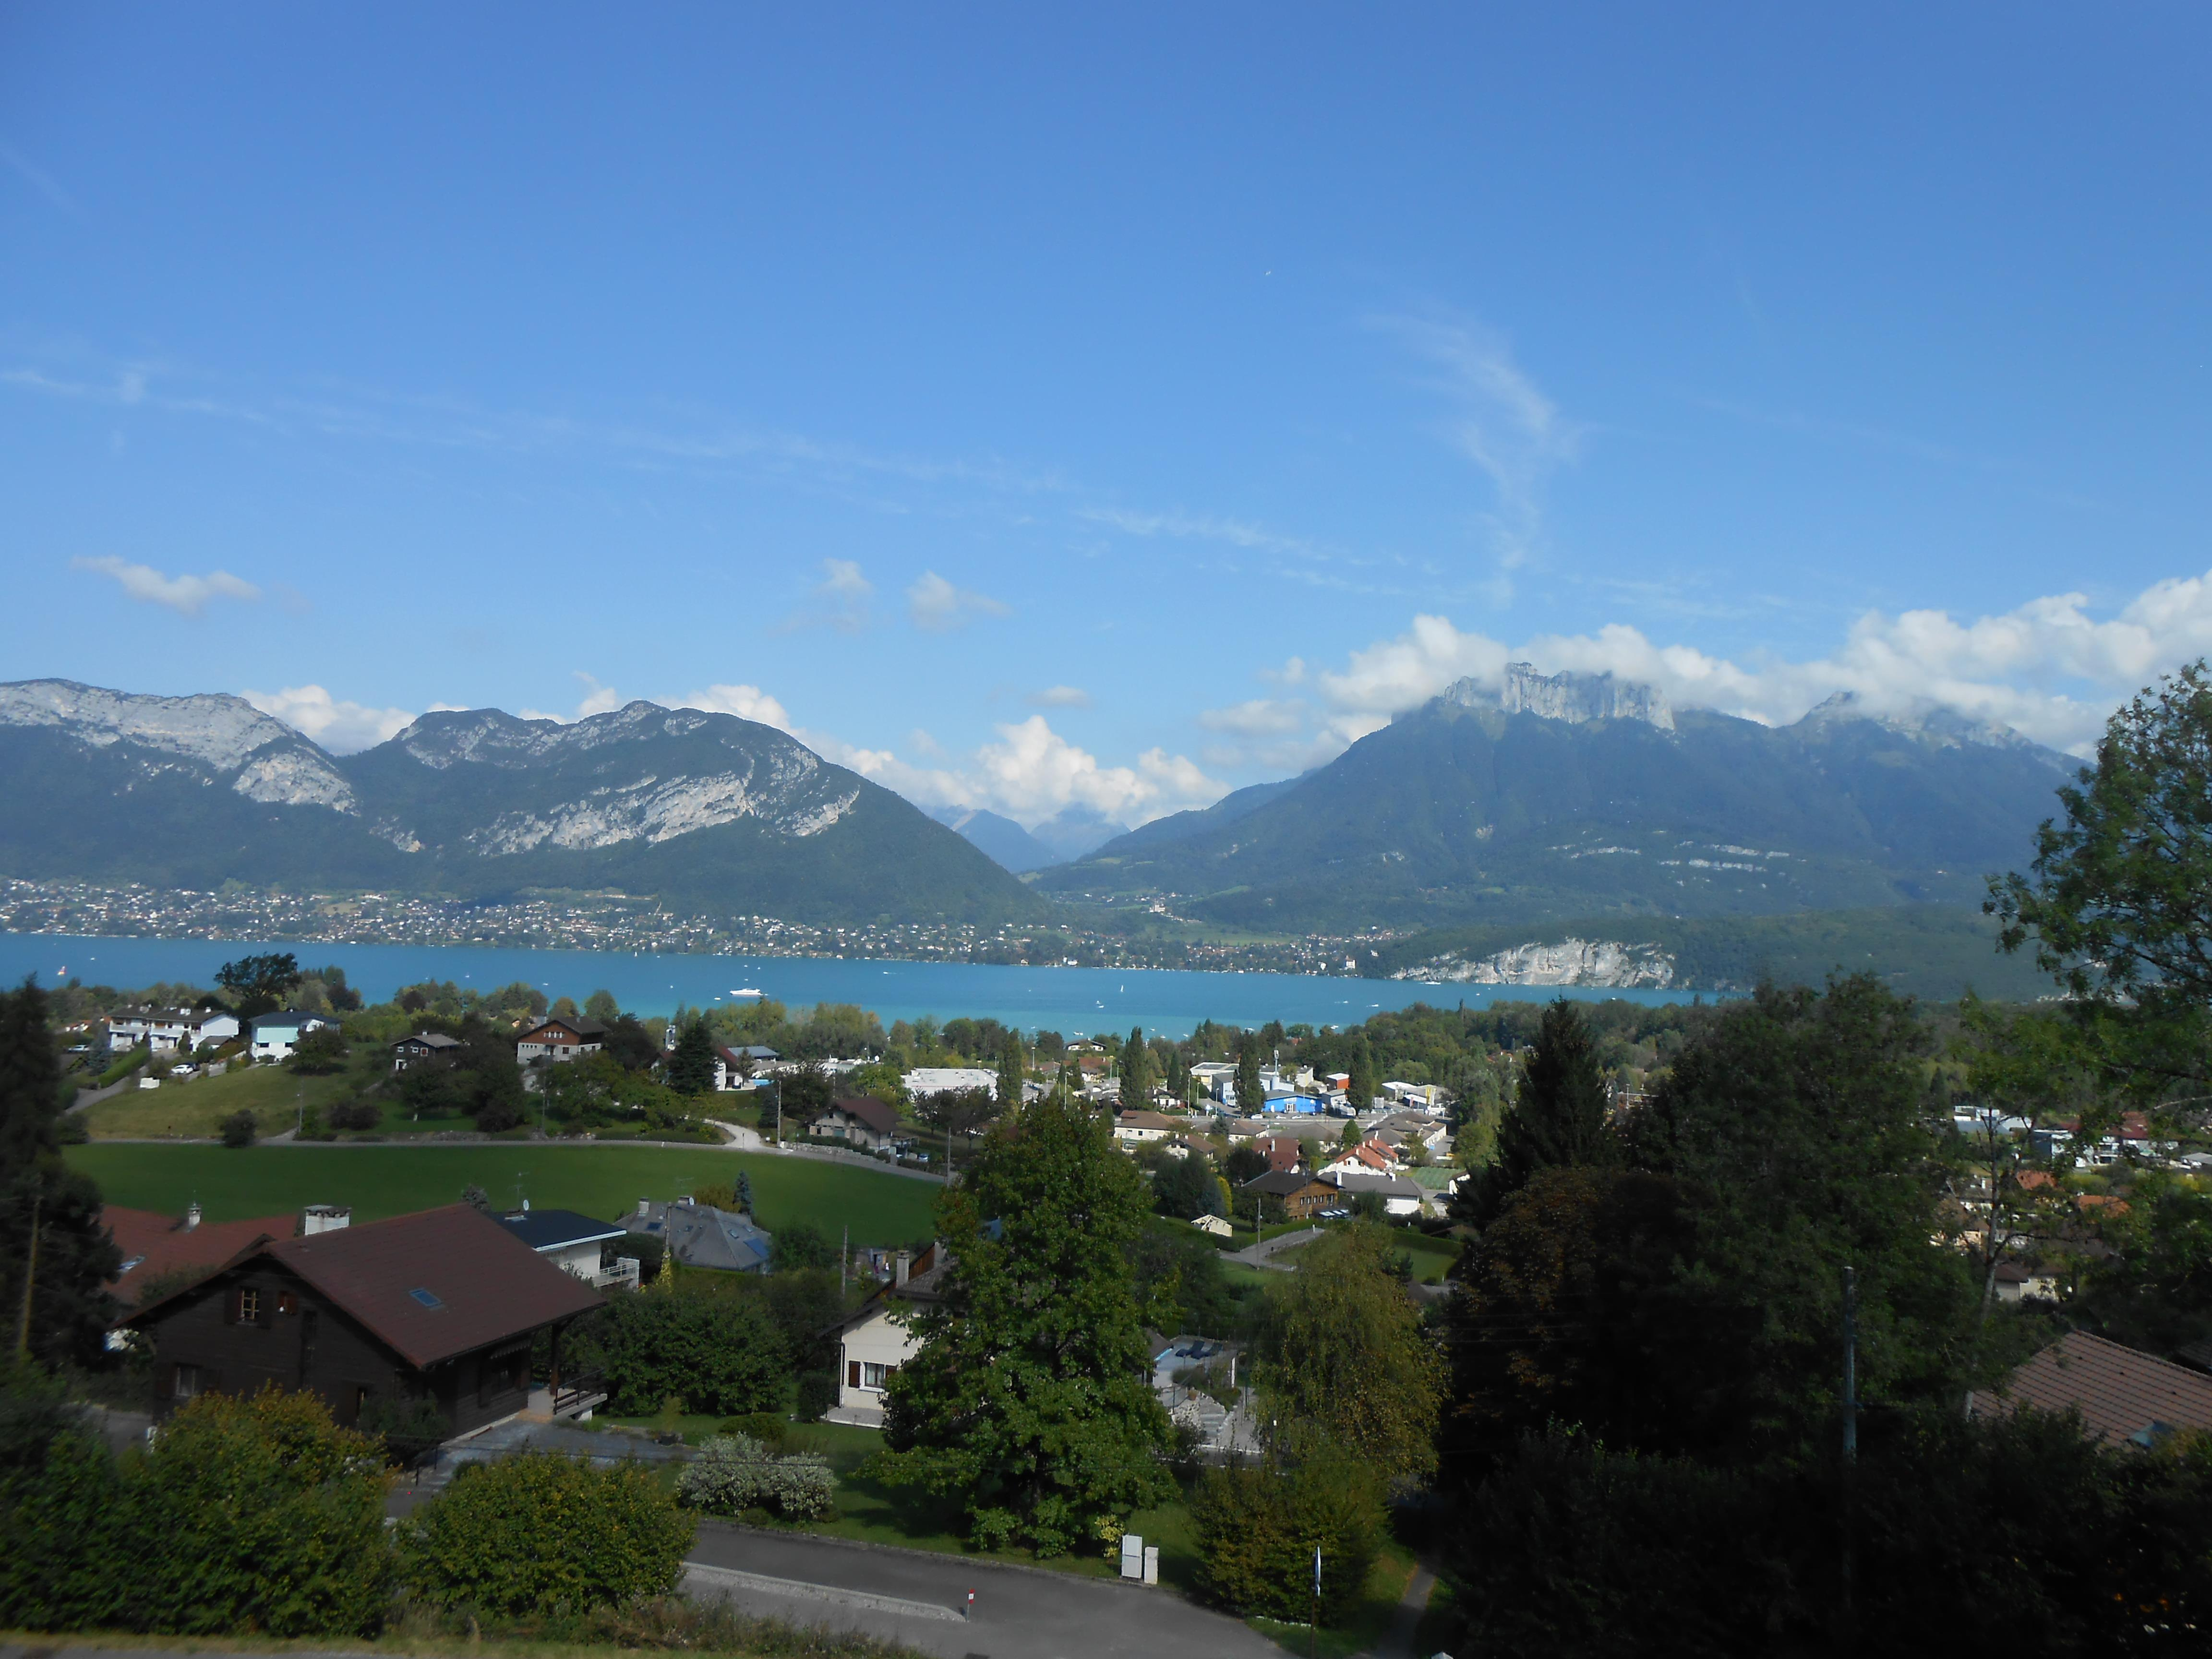 Location - Appartement T4 116M² Vue Lac - 4 Chambres / 2 Salle De Bains - Camping Le Panoramic